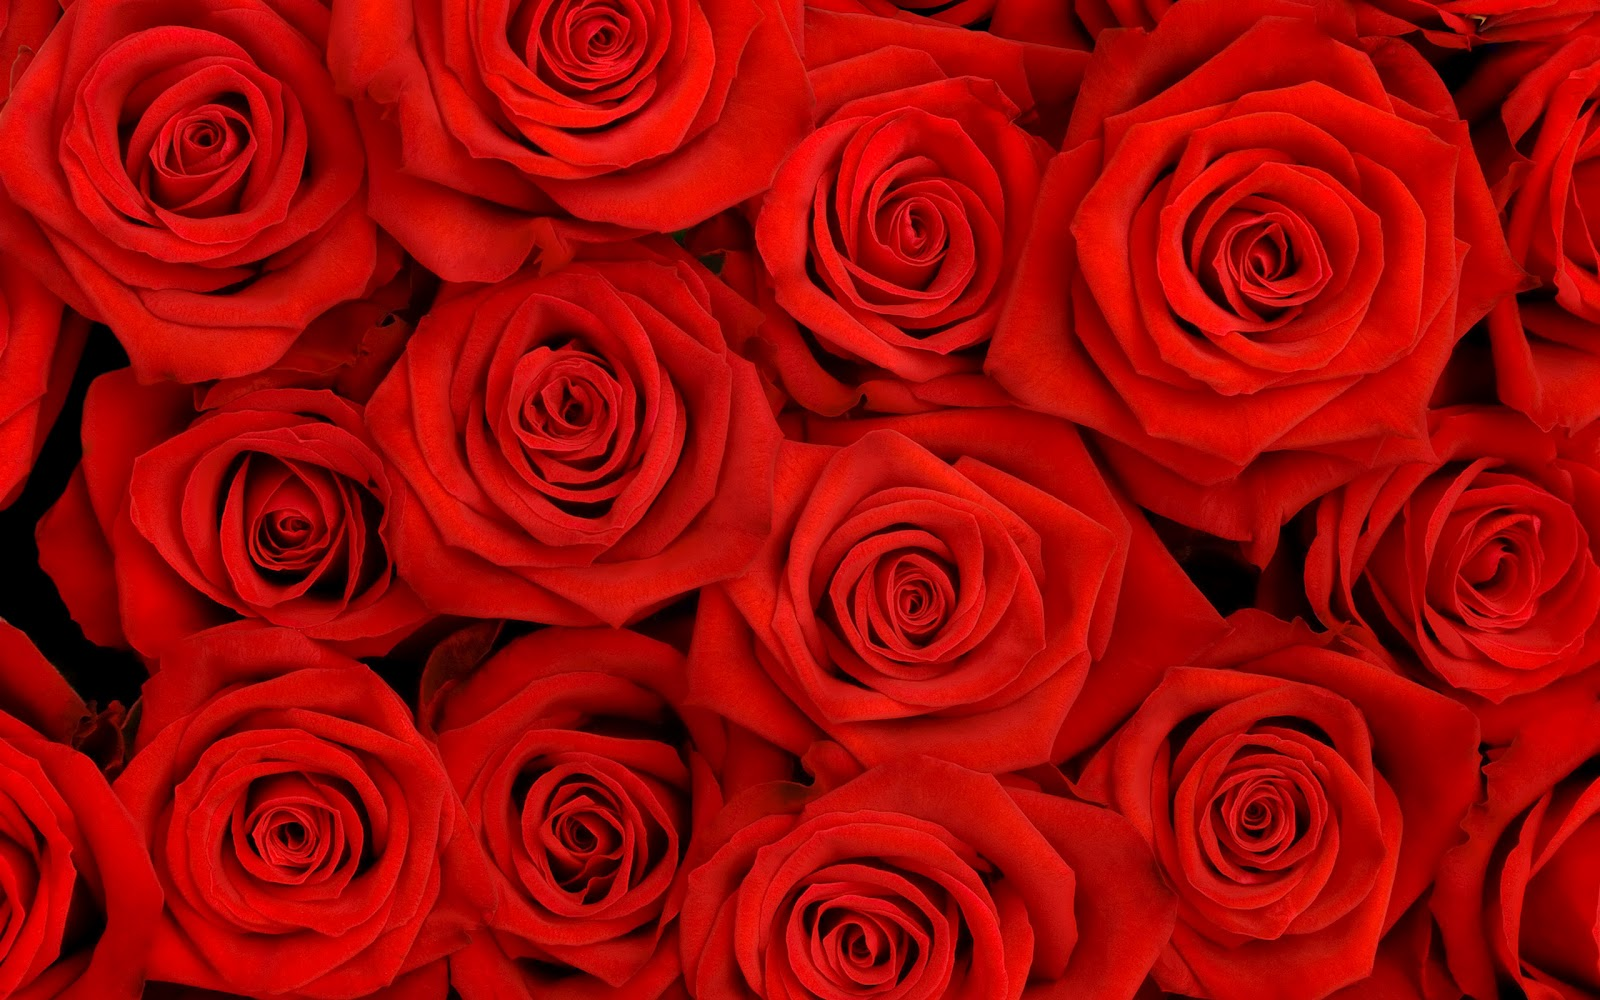 Wallpaper Red Rose Background